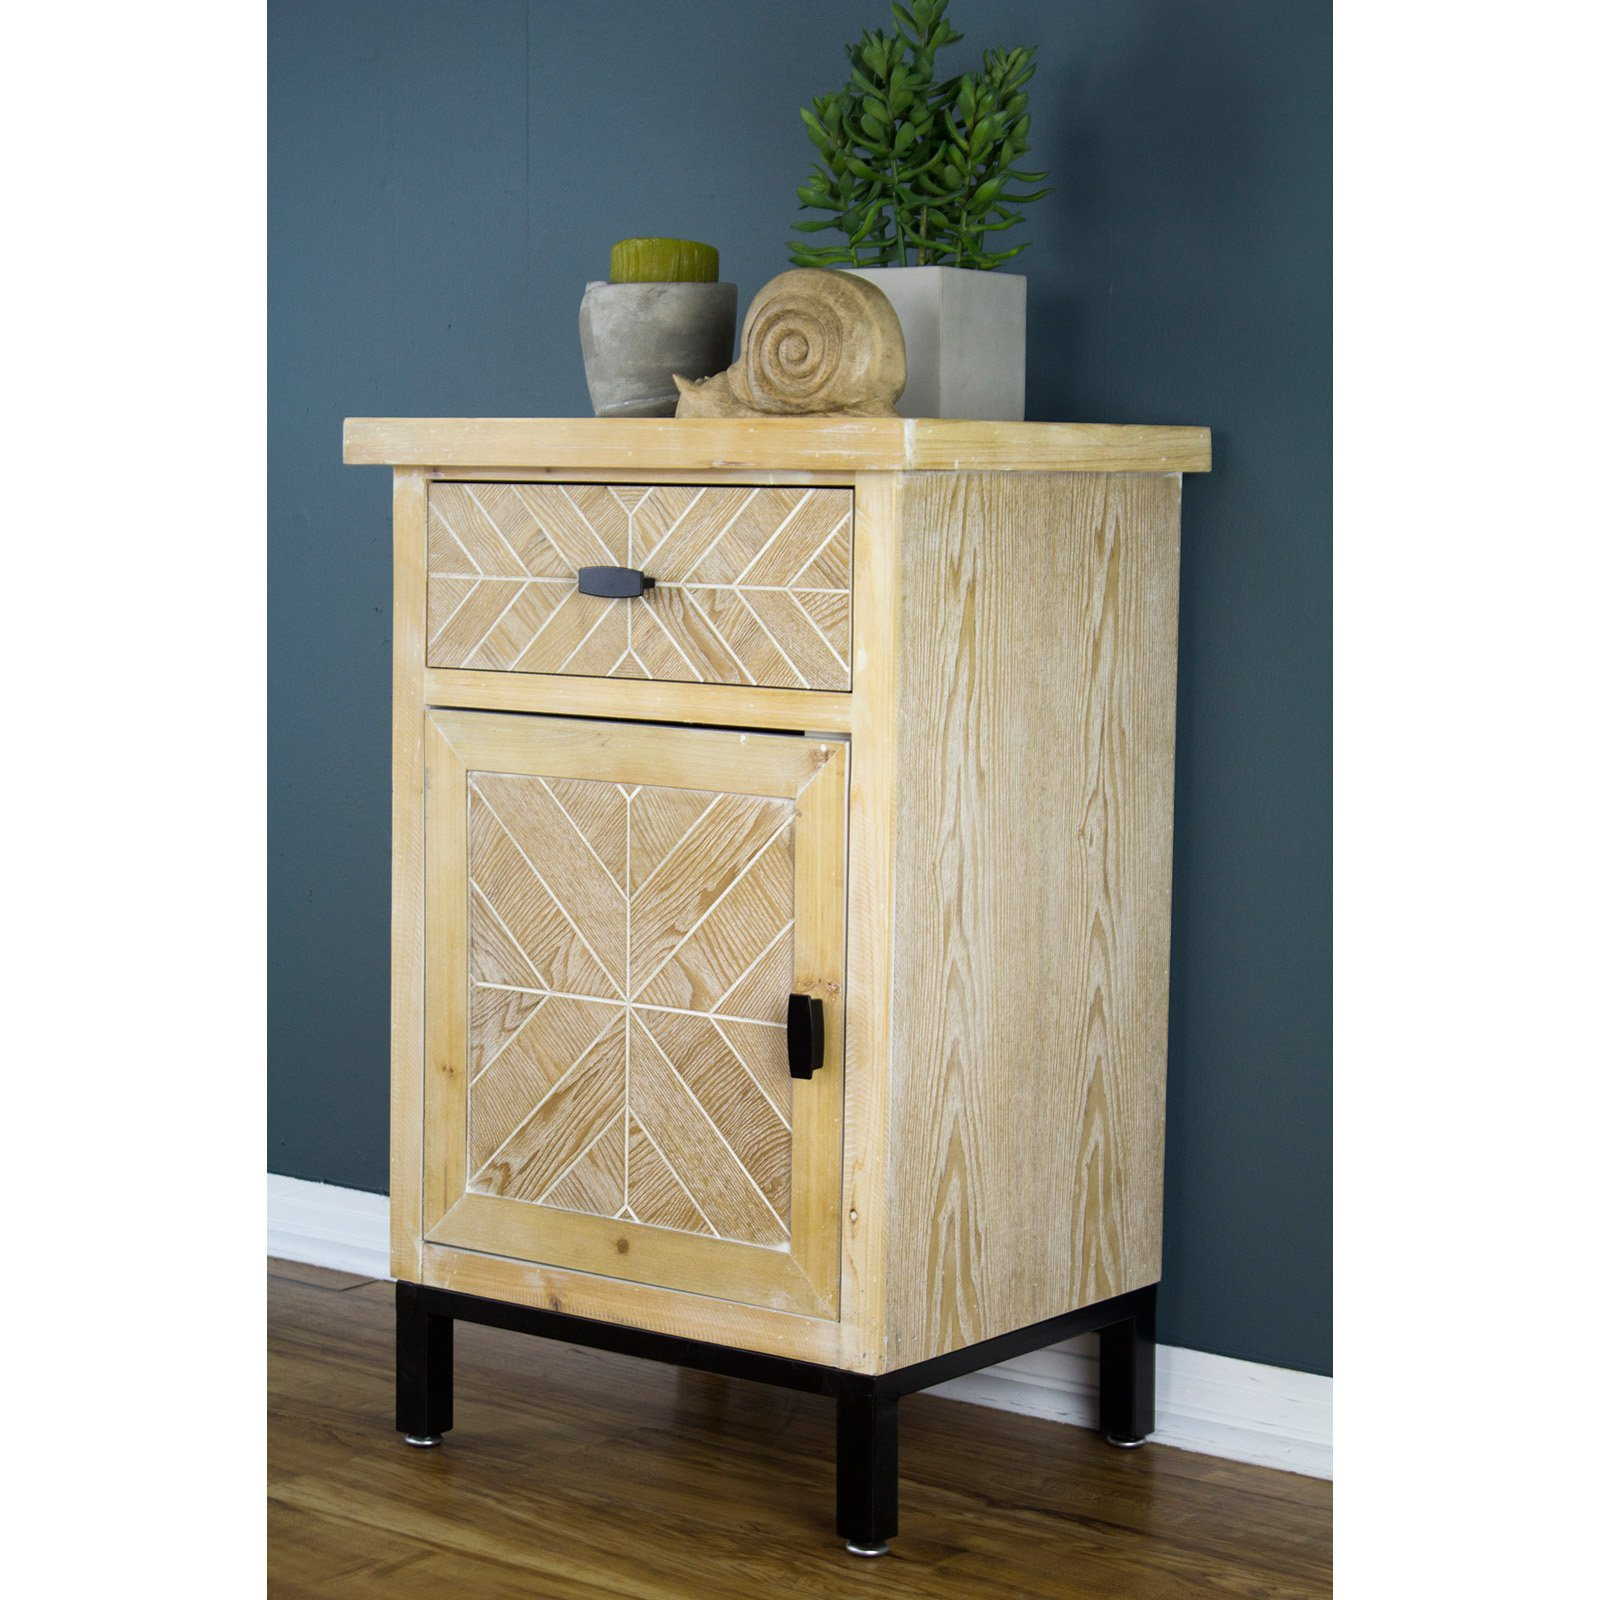 Heather Ann Creations Urban 1 Drawer Parquet Accent Cabinet